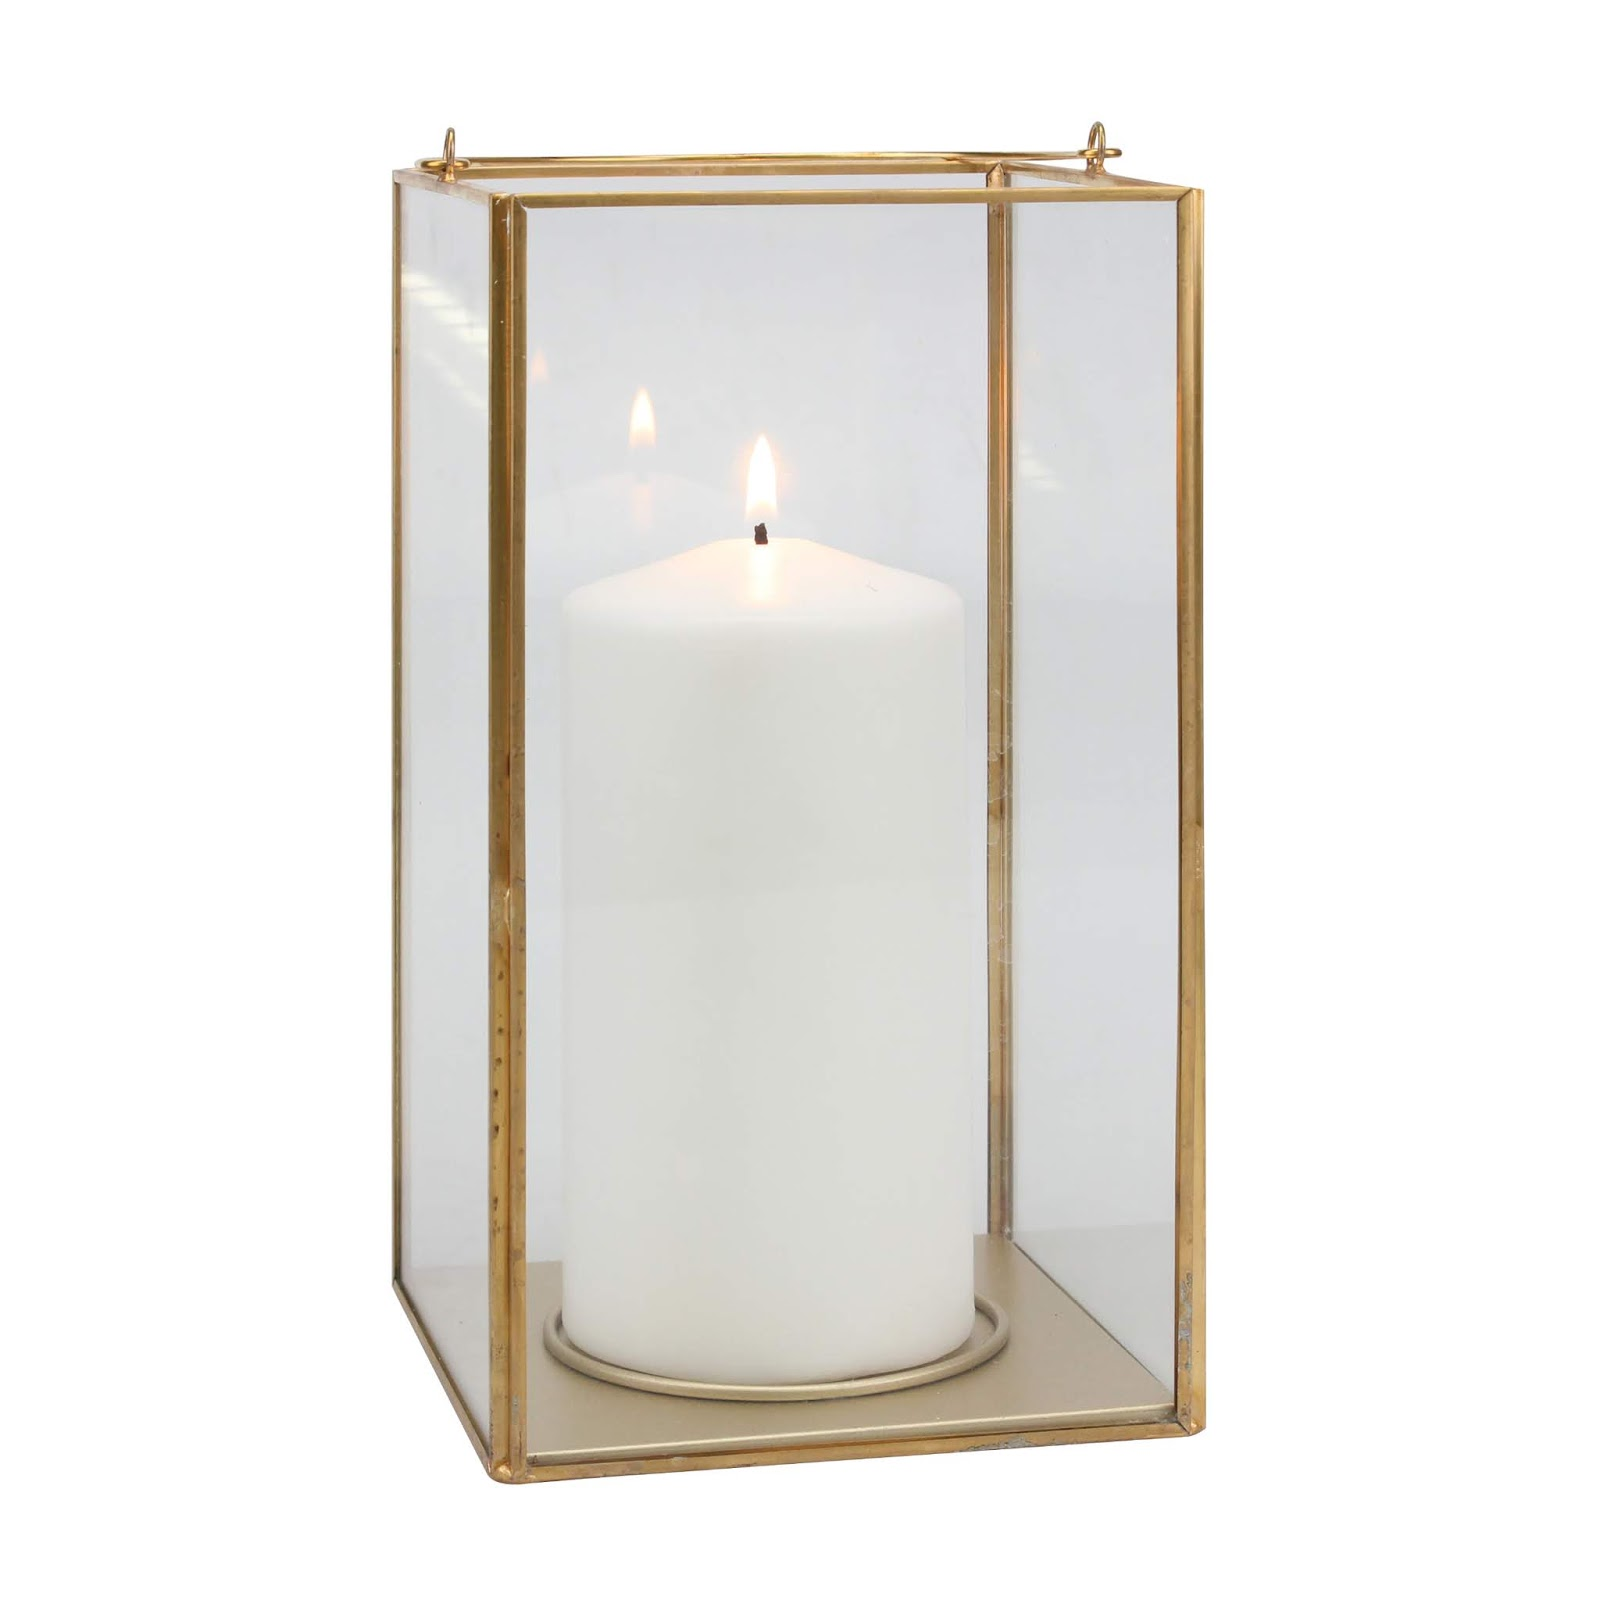 Simple gold/brass candle lantern